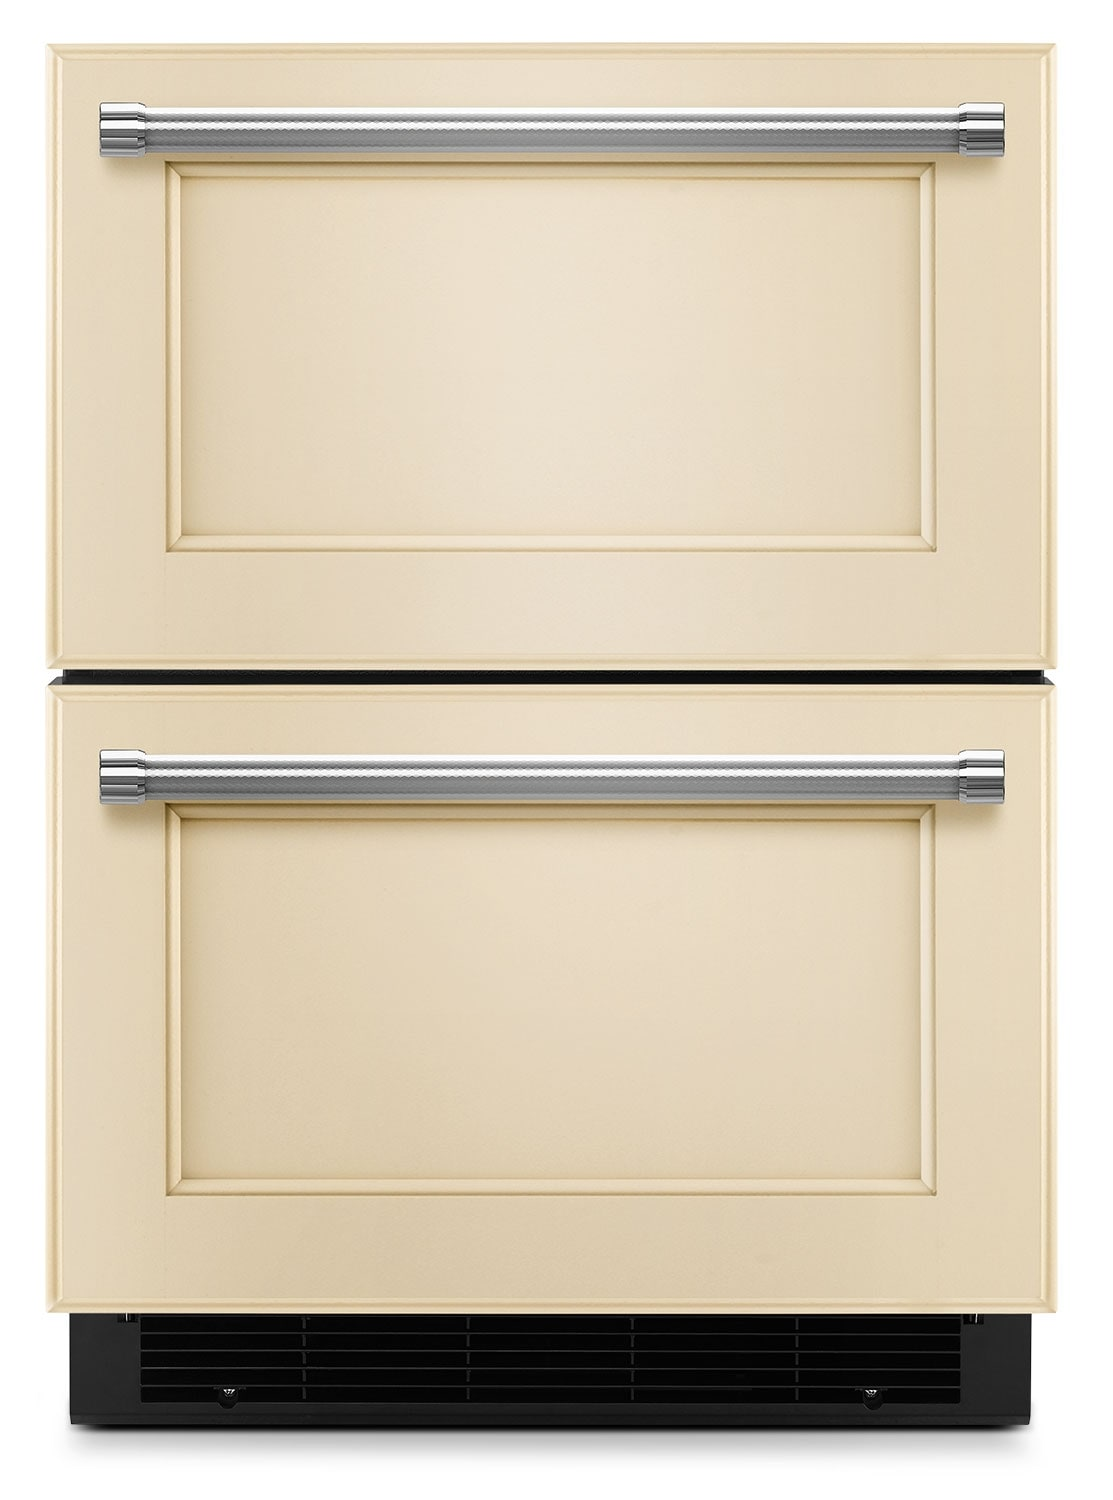 Kitchenaid 24 Quot Double Refrigerator Drawer Panel Ready